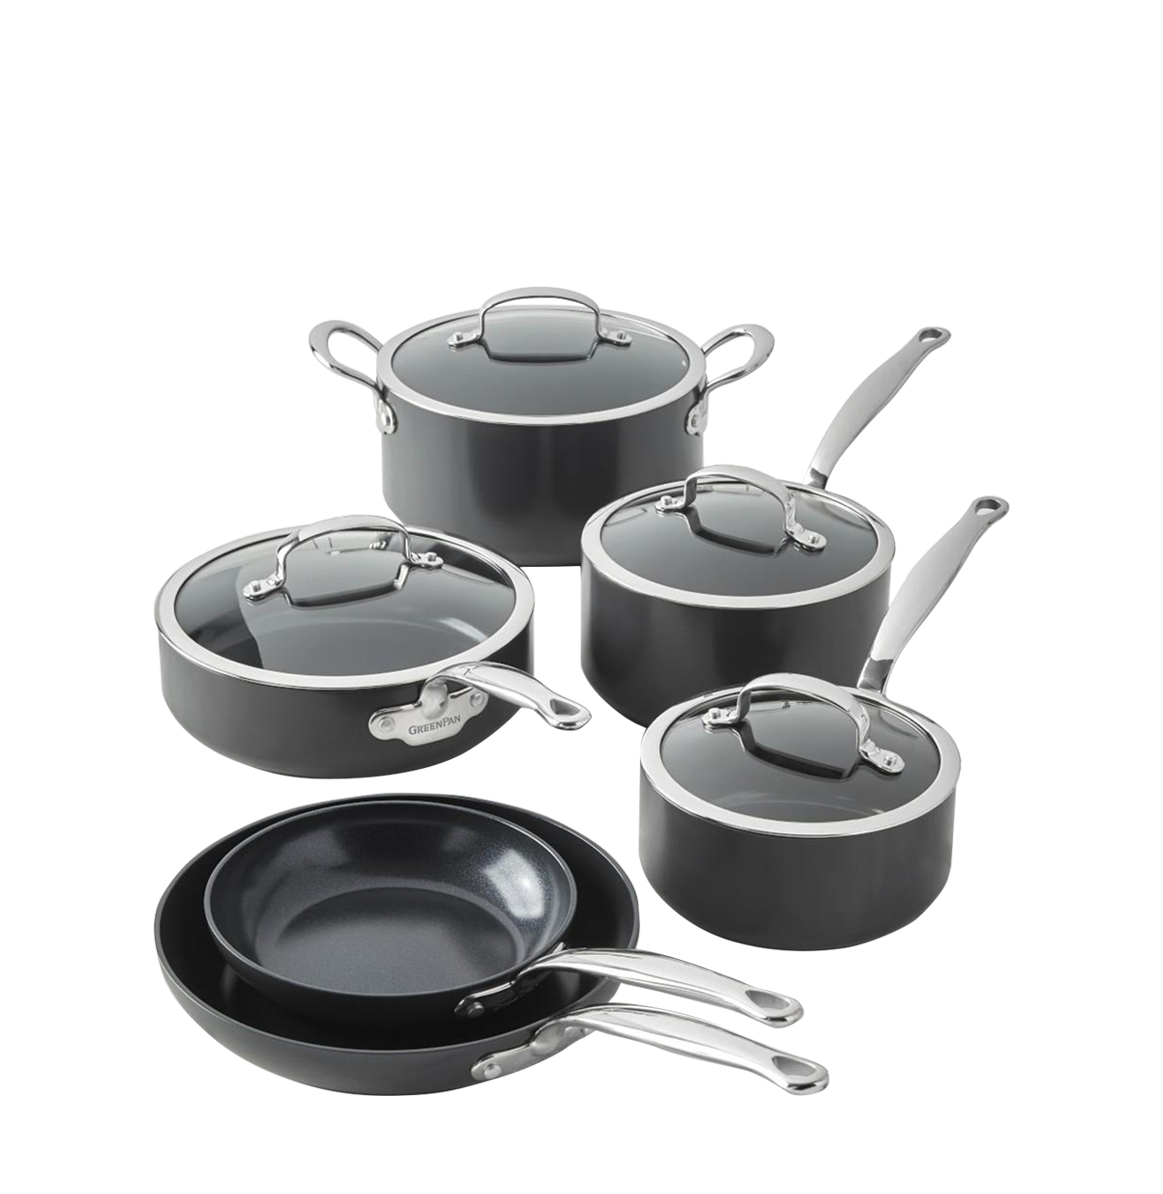 6 Best Ceramic Cookware Sets 2020 Top Tested Ceramic Pots And Pans